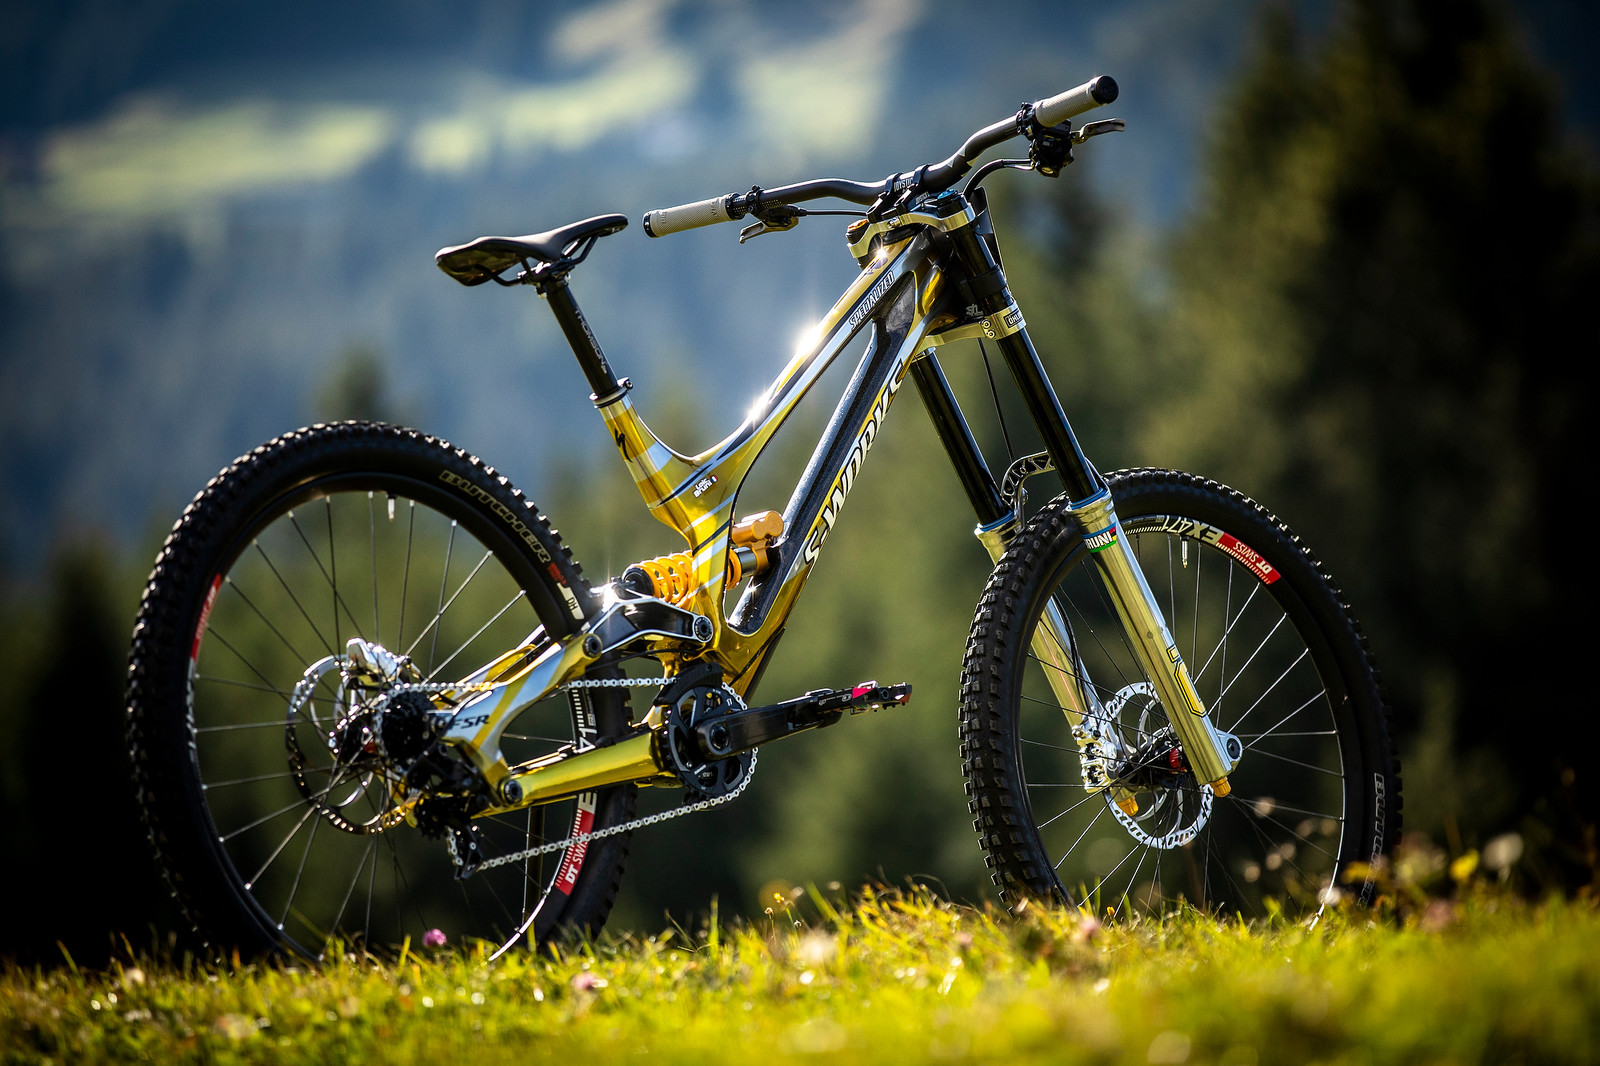 Mr. Sparkle - WORLD CHAMPS BIKE - Loic Bruni's Specialized Demo - Mountain Biking Pictures - Vital MTB